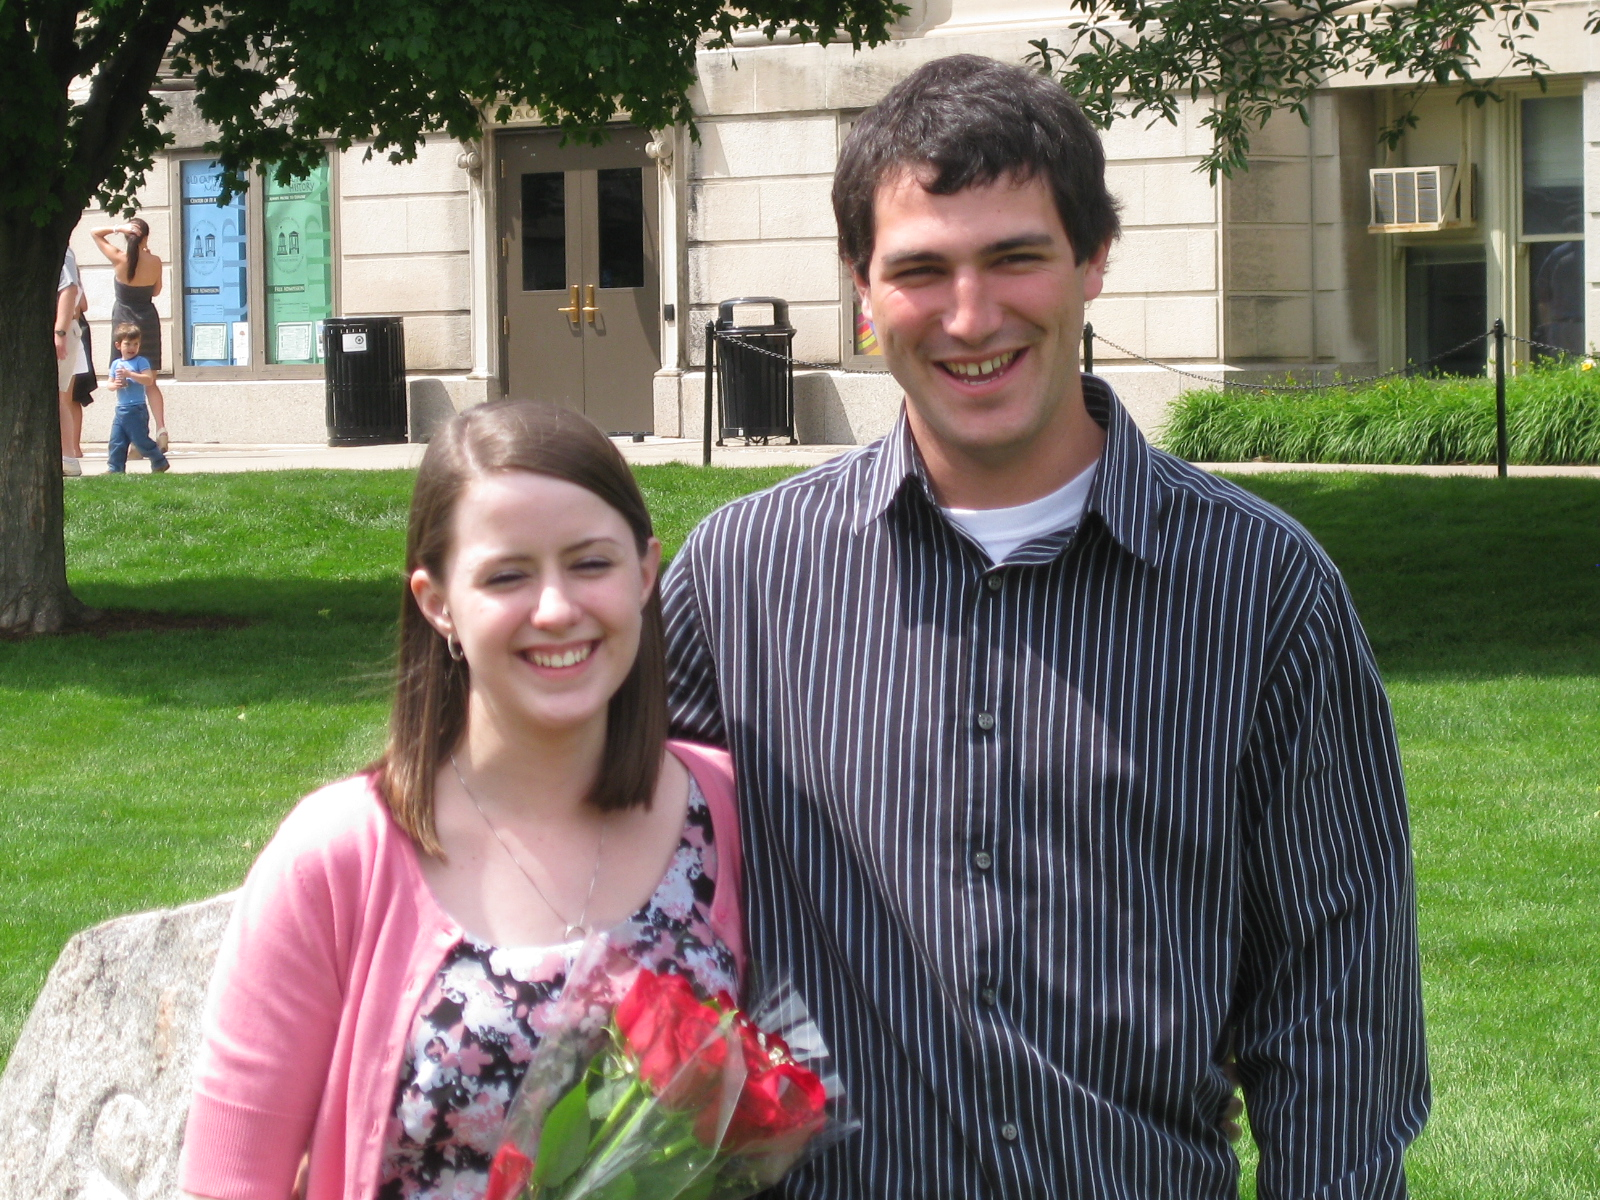 Dillon and Megan in Iowa City for Megan's college graduation.